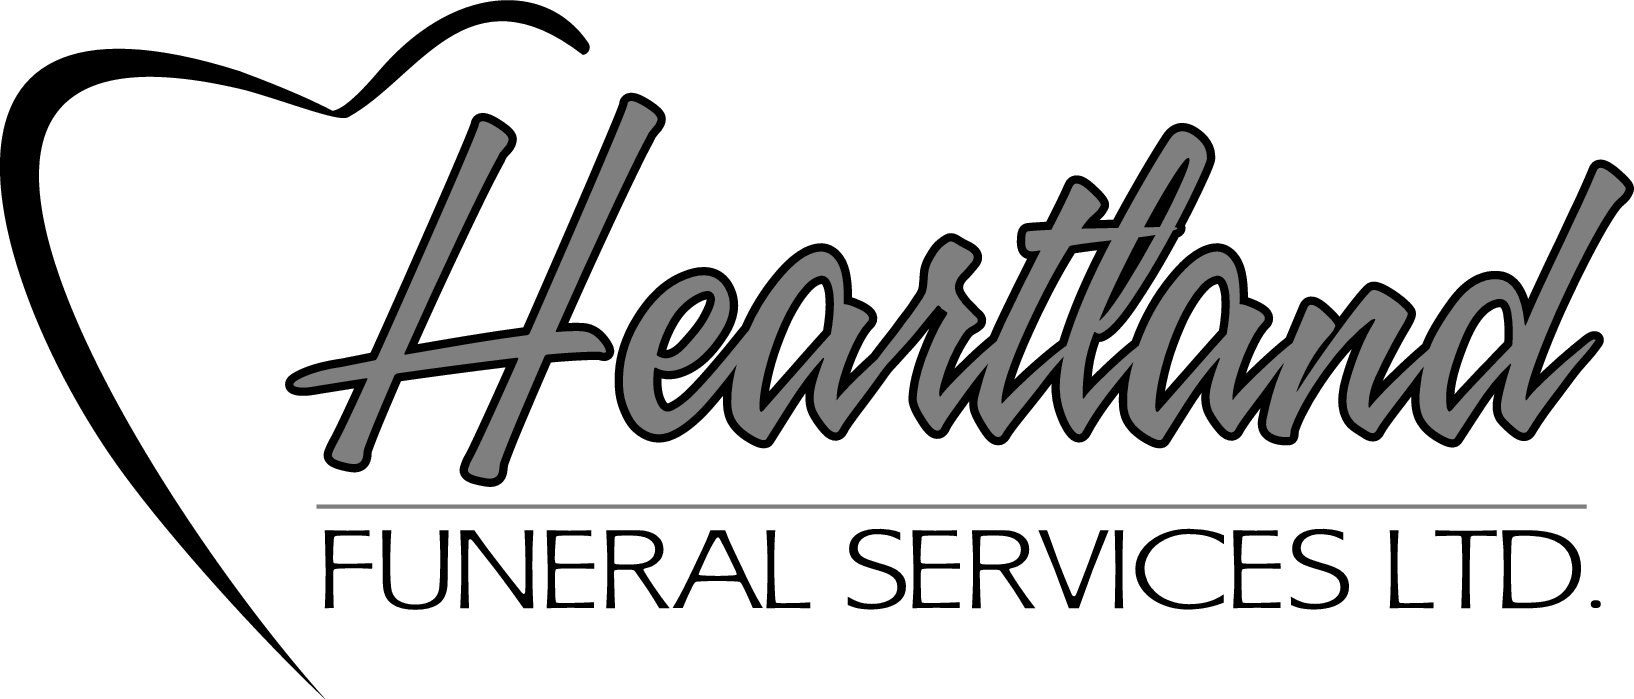 Heartland Funeral Services Ltd.